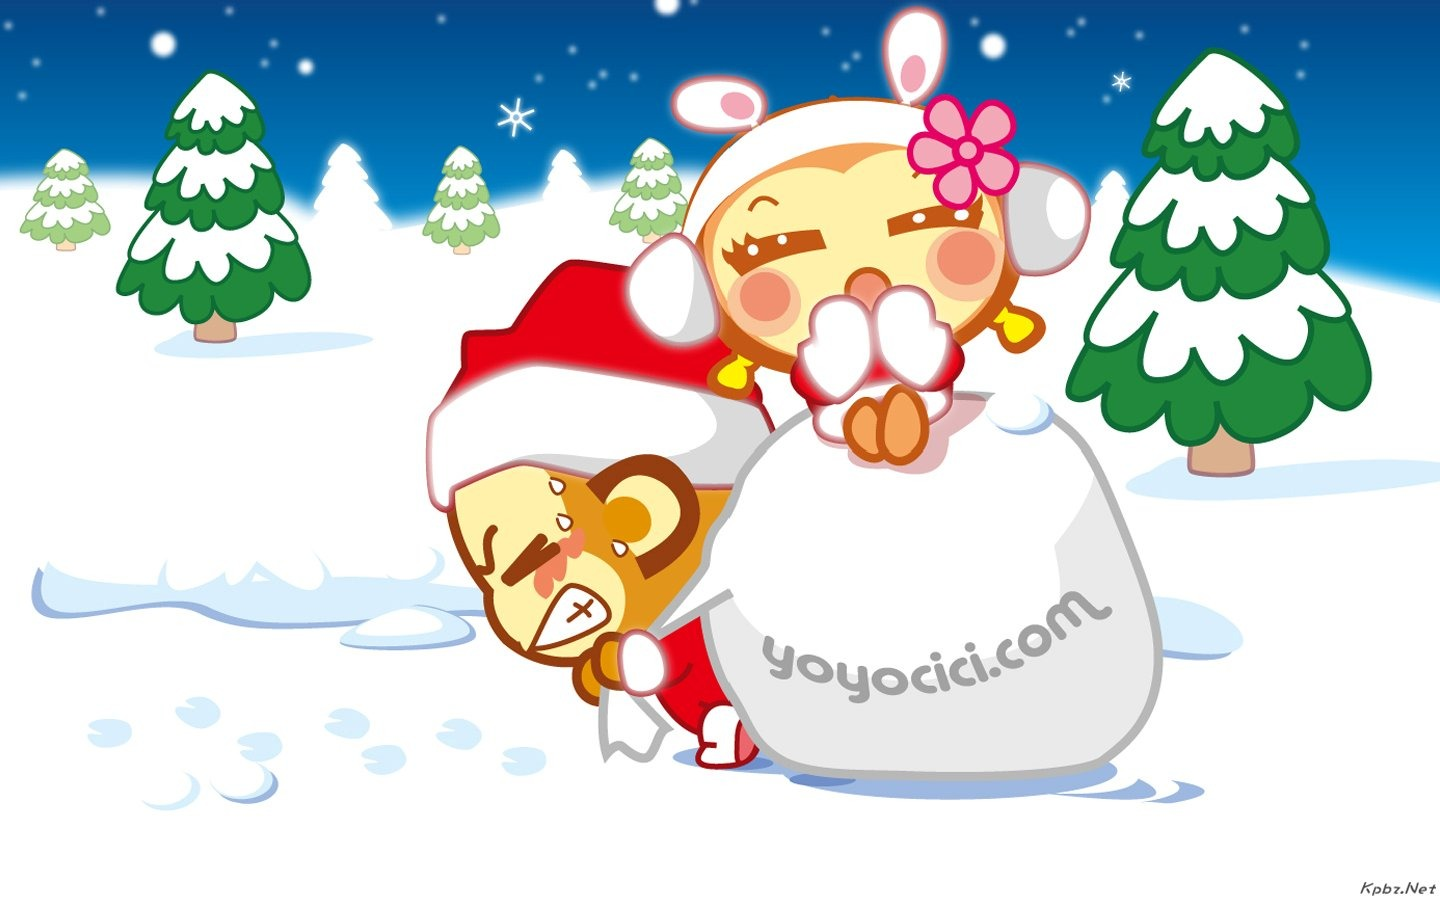 Yau giggle monkey wallpaper #12 - 1440x900